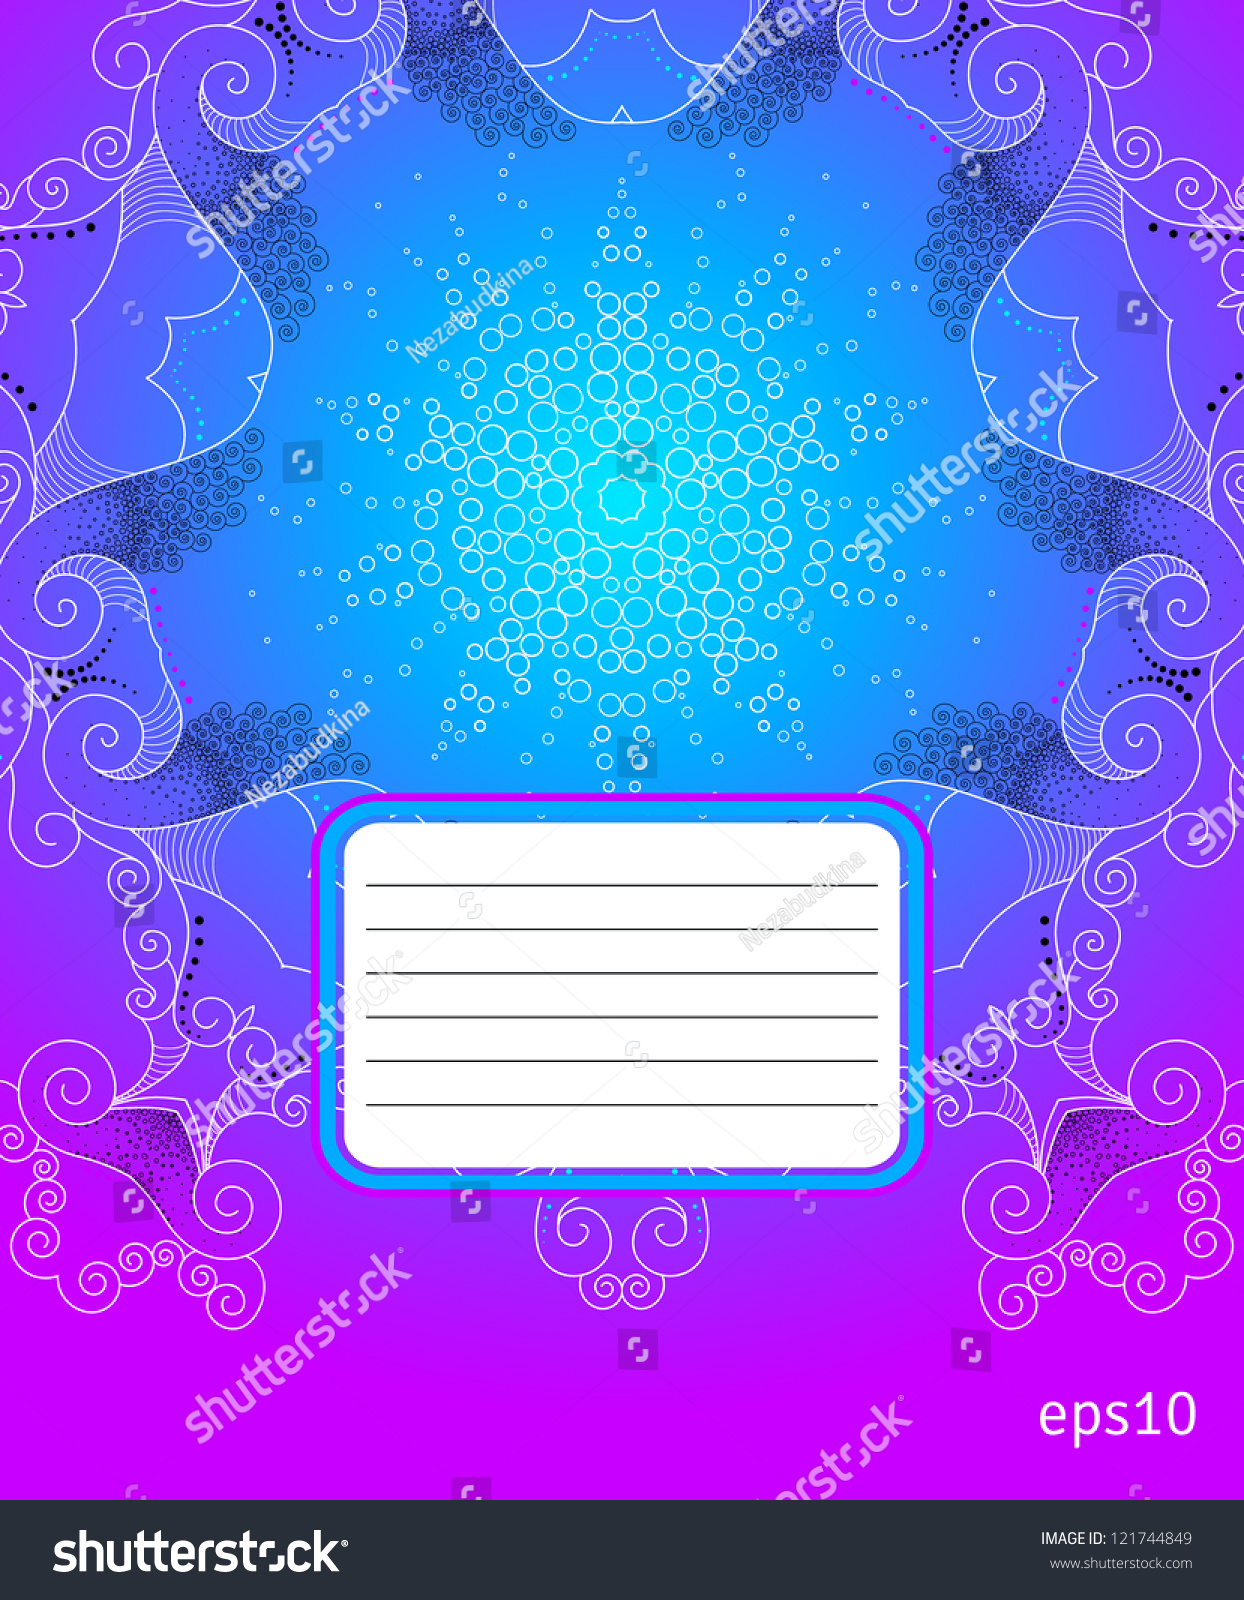 School Notebook Cover Design : The cover design for school notebook abstract